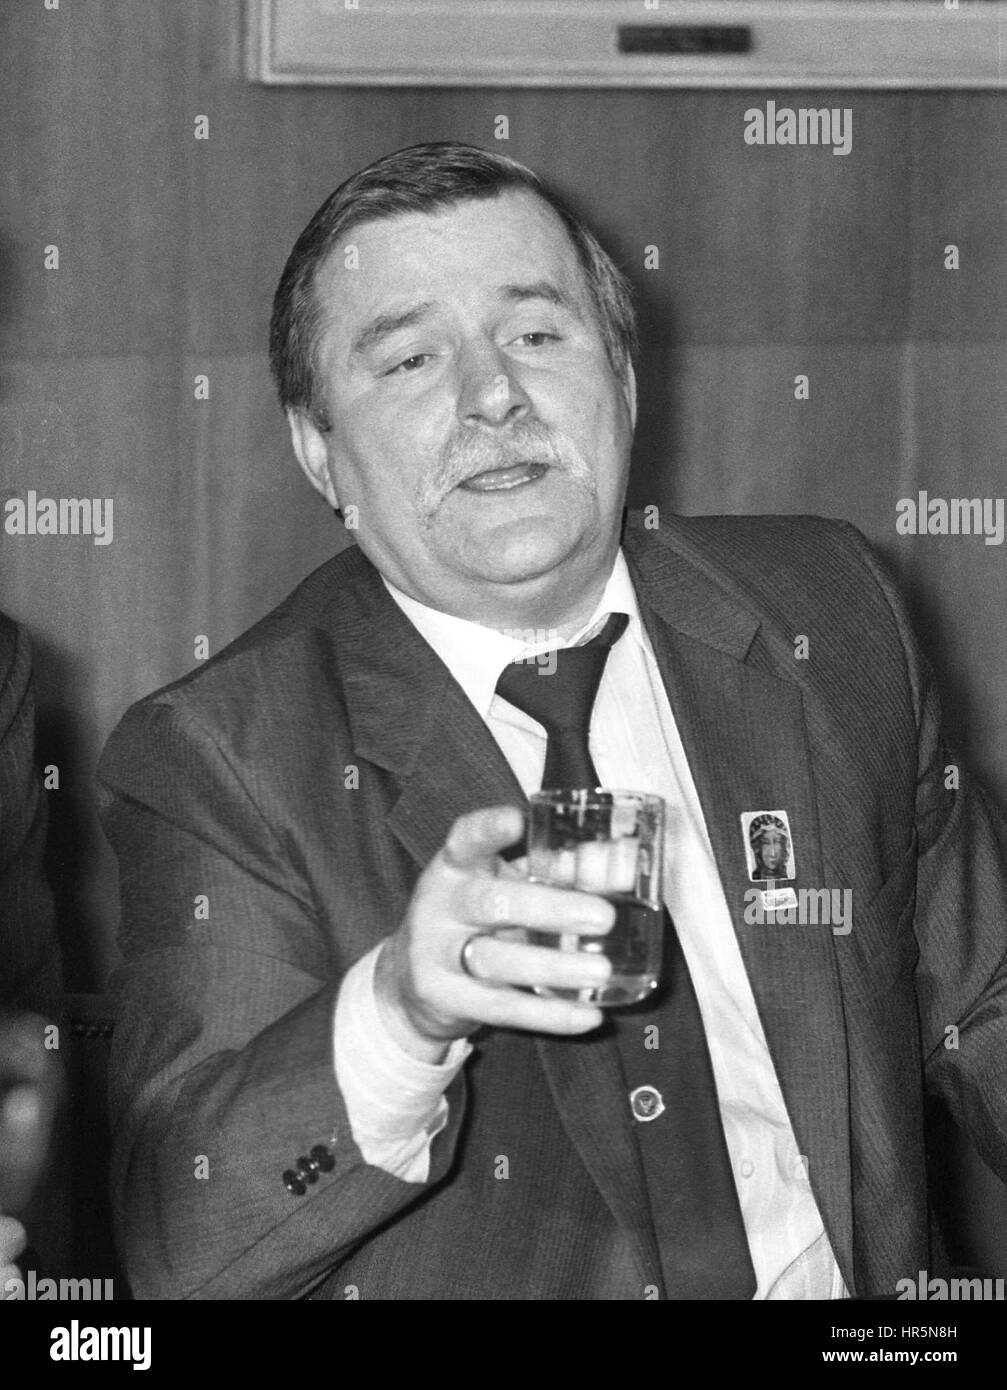 Lech Walesa, President of Poland, attends a press conference at the Trades Union Congress in London, England on - Stock Image